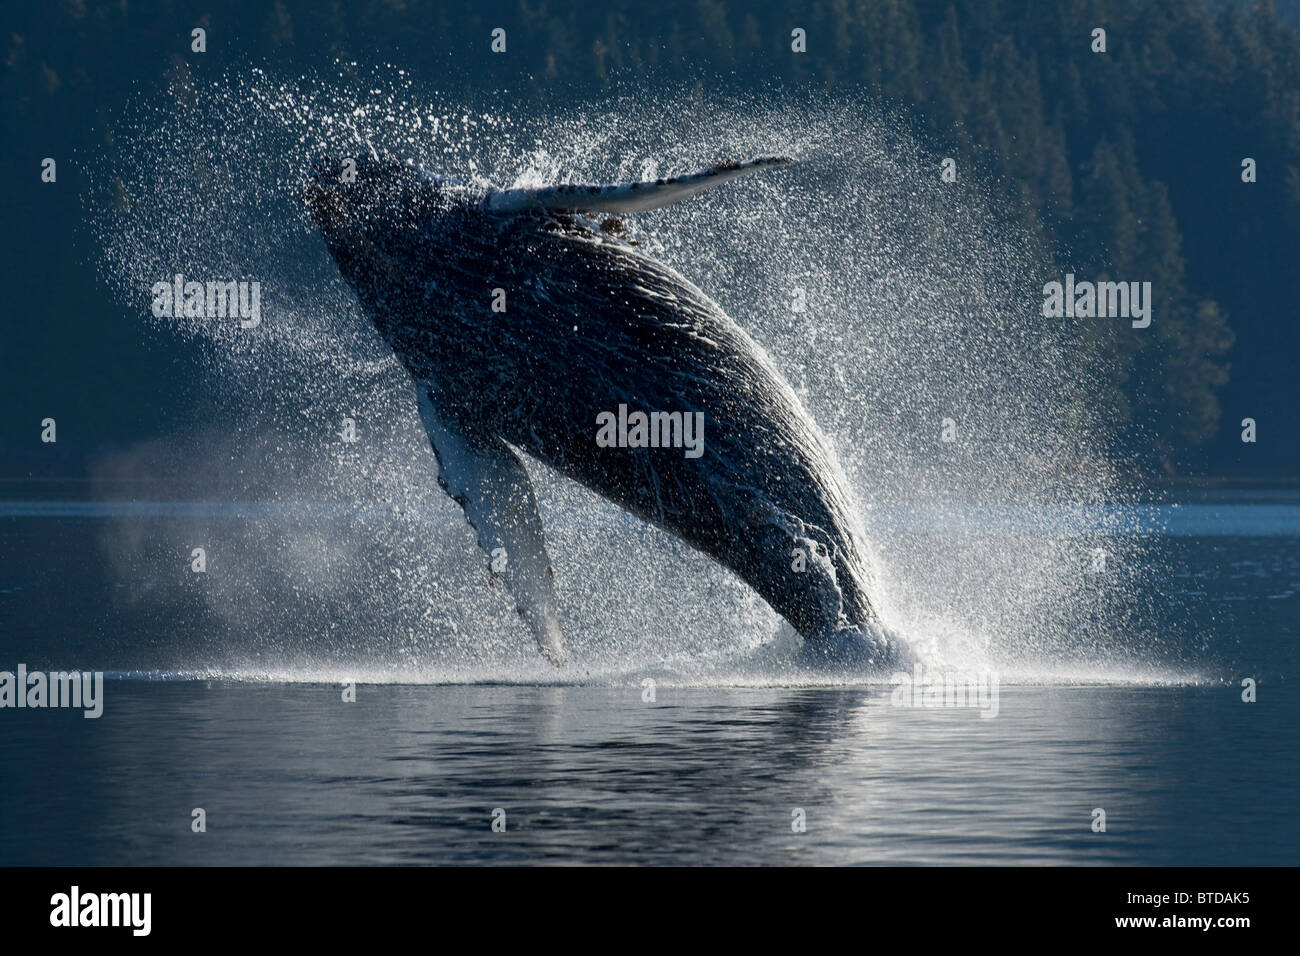 Humpback Whale breaching in the waters of the Inside Passage, Southeast Alaska, Summer Stock Photo